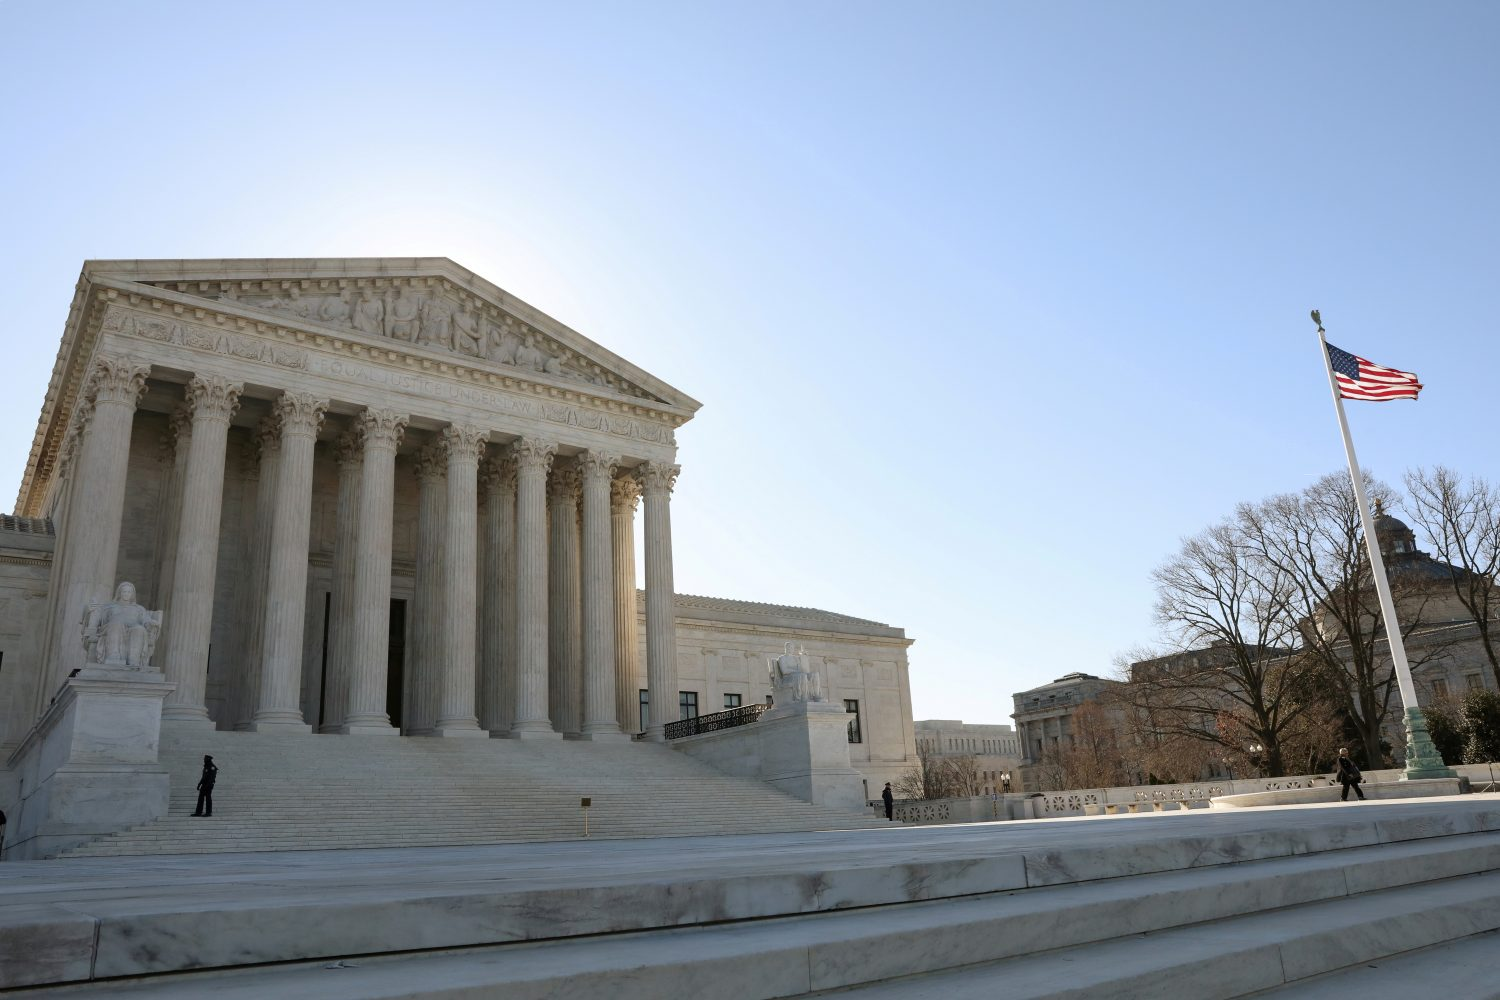 FILE PHOTO: The U.S. Supreme Court building is seen in Washington, U.S., March 26, 2019. REUTERS/Brendan McDermid/File Photo